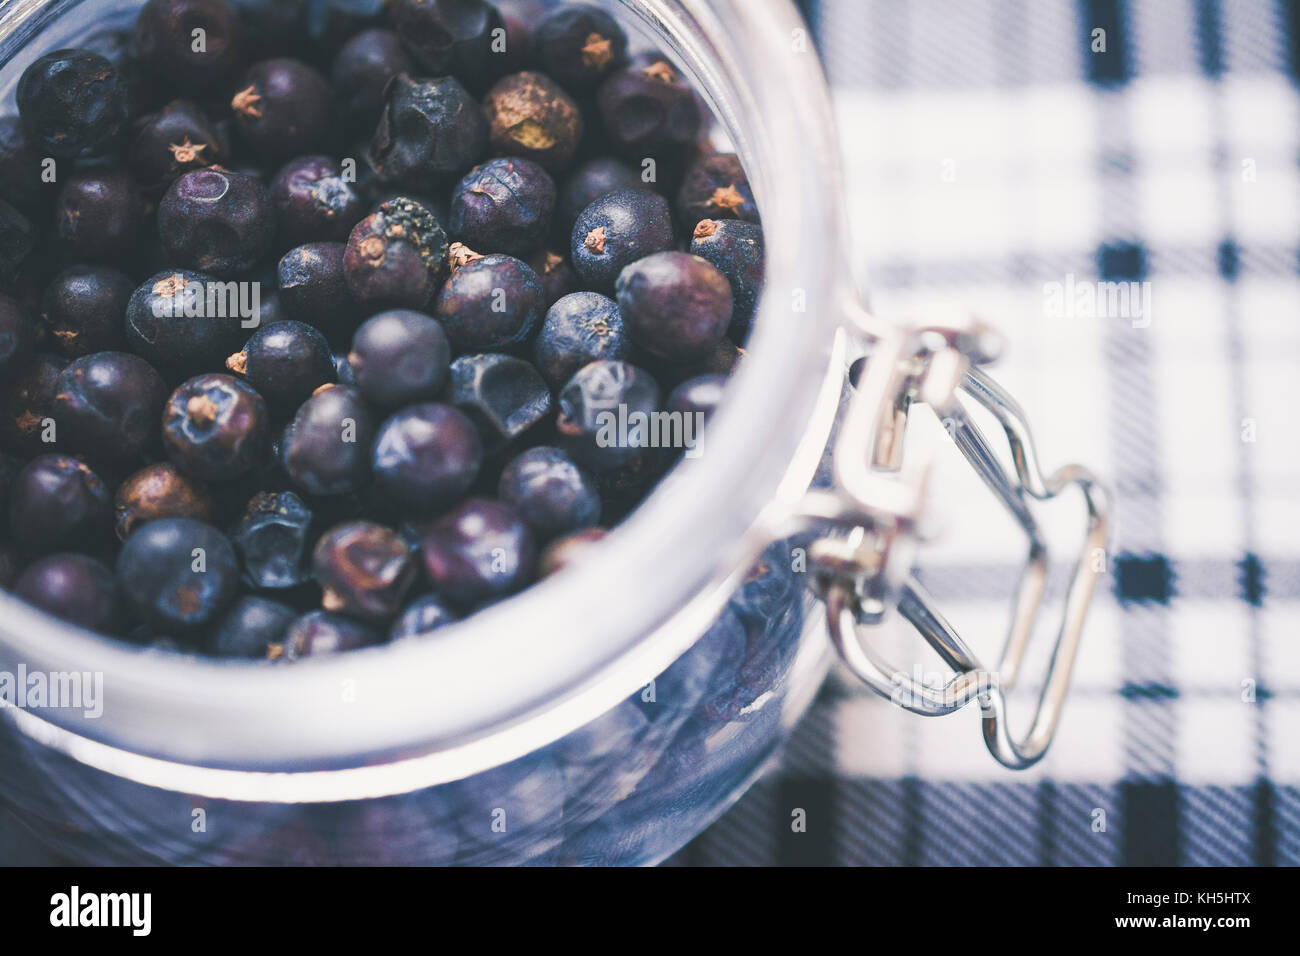 Gin Ingredient: juniper berries in glass jar on blue and white tartan - Stock Image